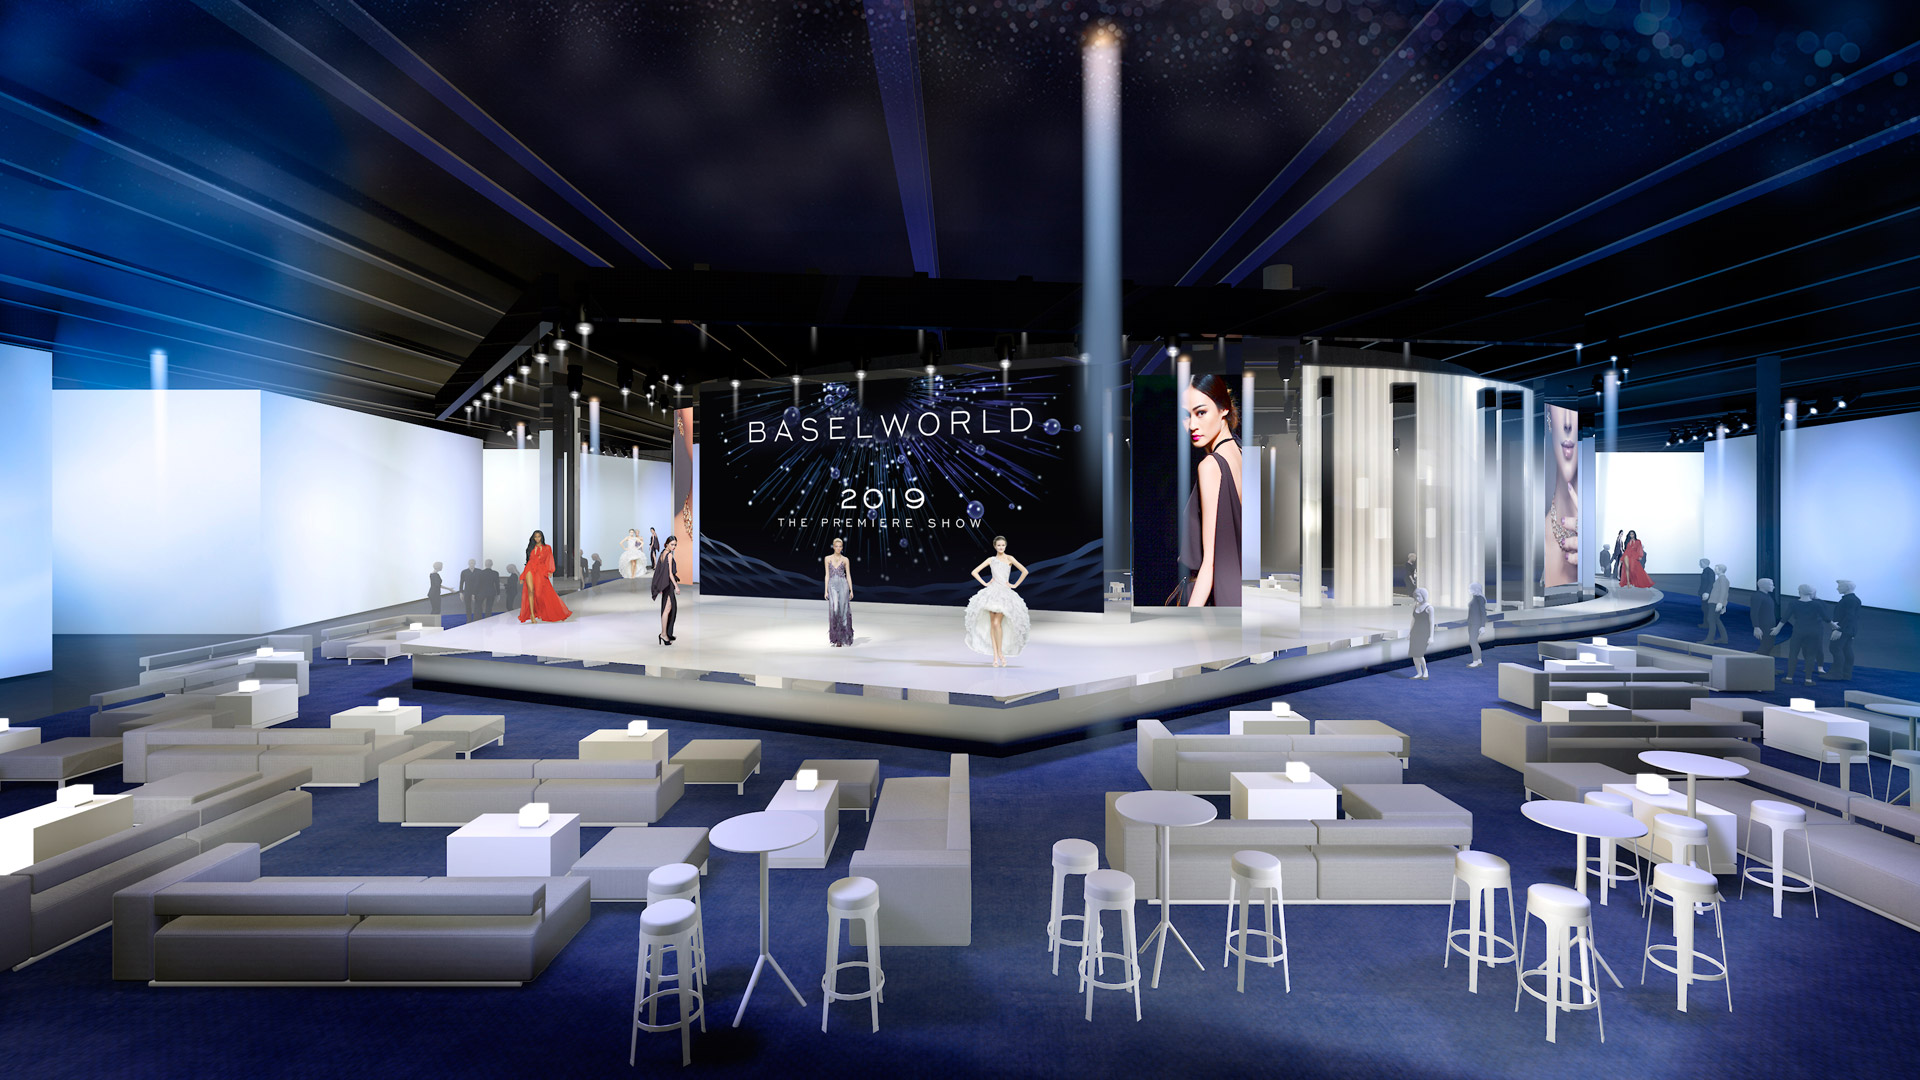 Picture of the Show Plaza in Baselworld 2019